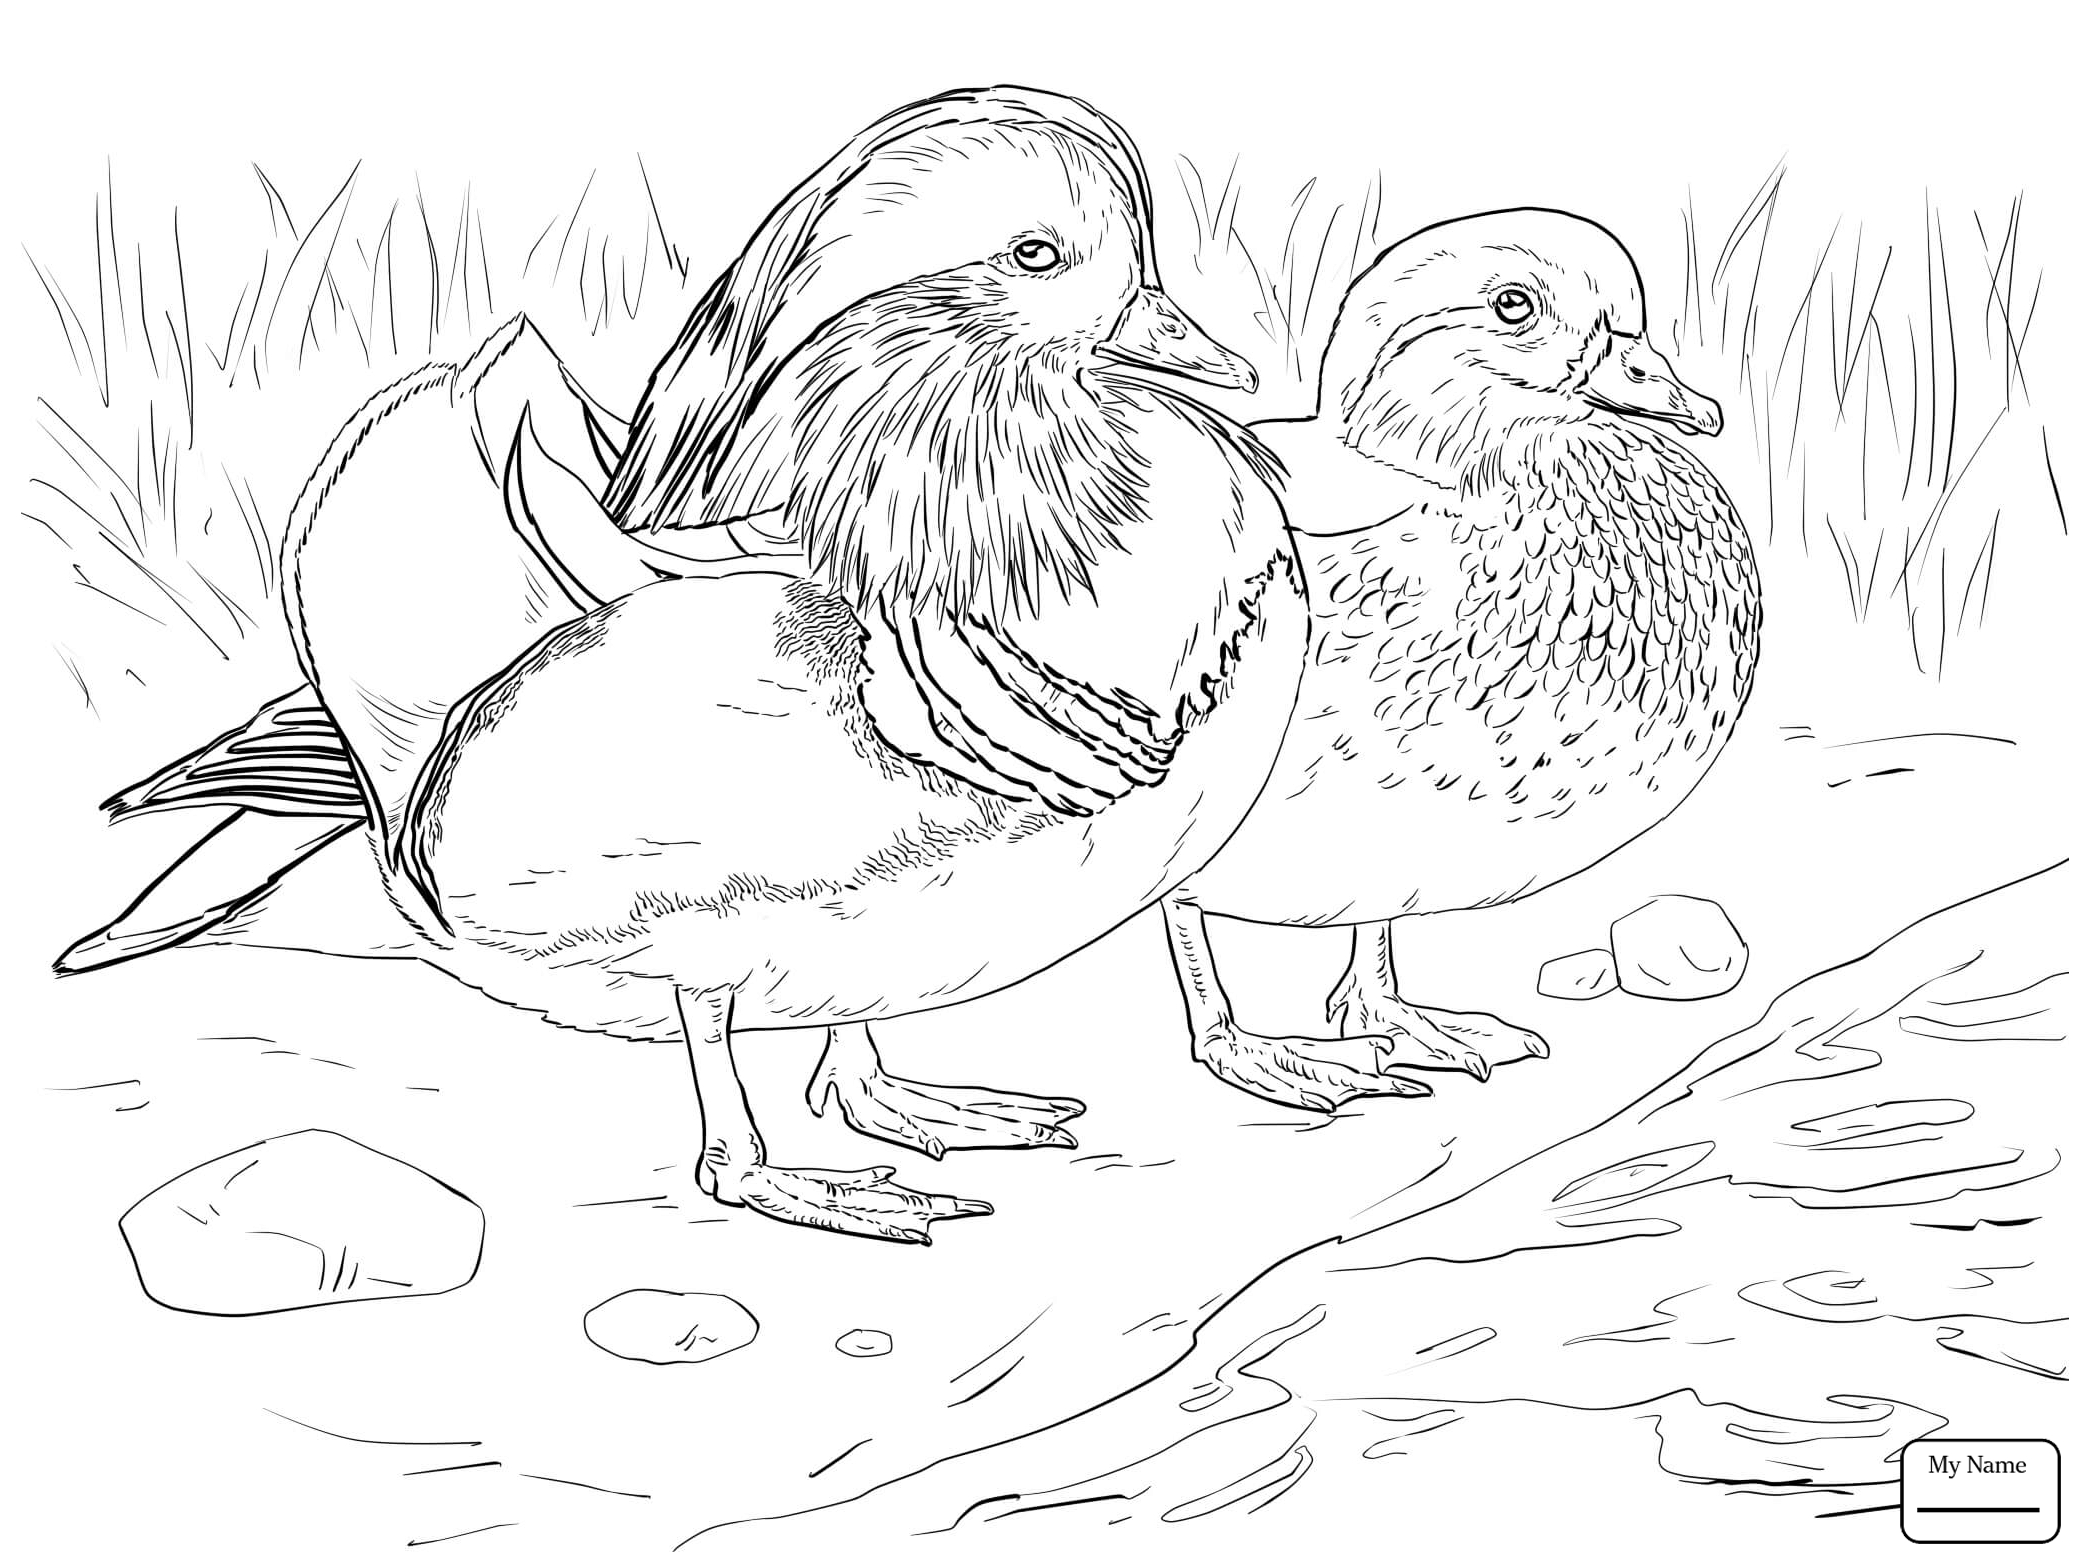 duck drawings flying duck drawing free download on clipartmag duck drawings 1 1